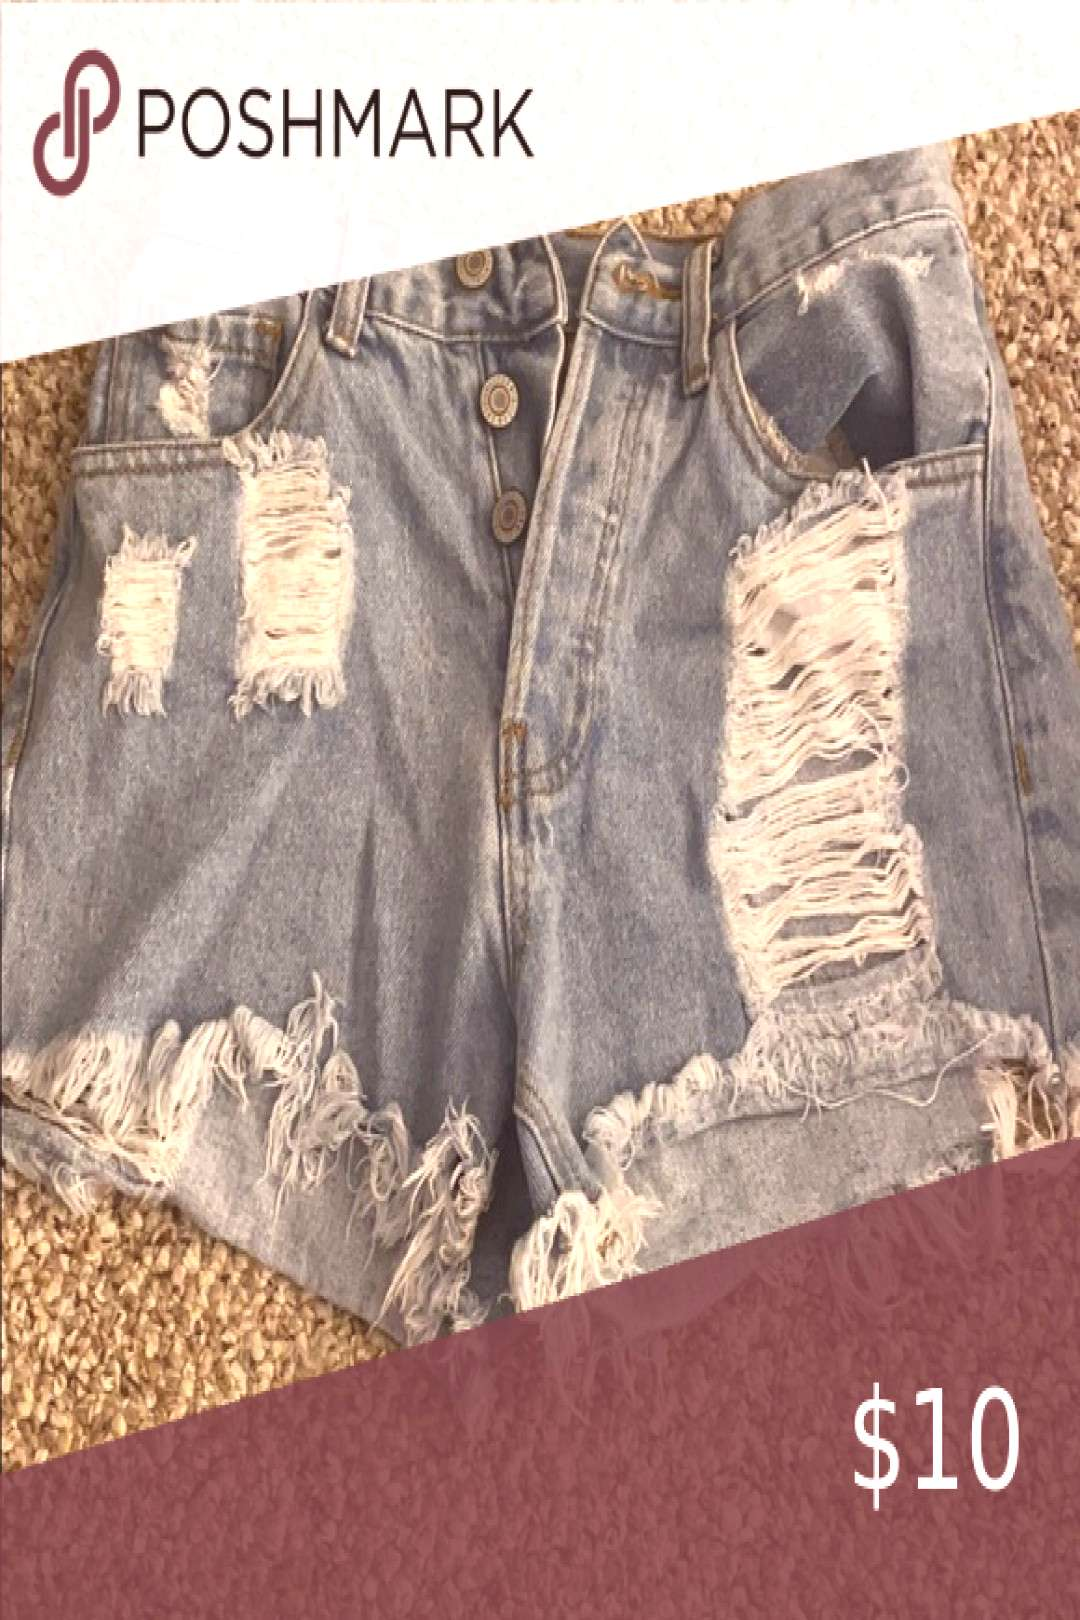 I just added this listing on Poshmark PacSun Jean shorts.